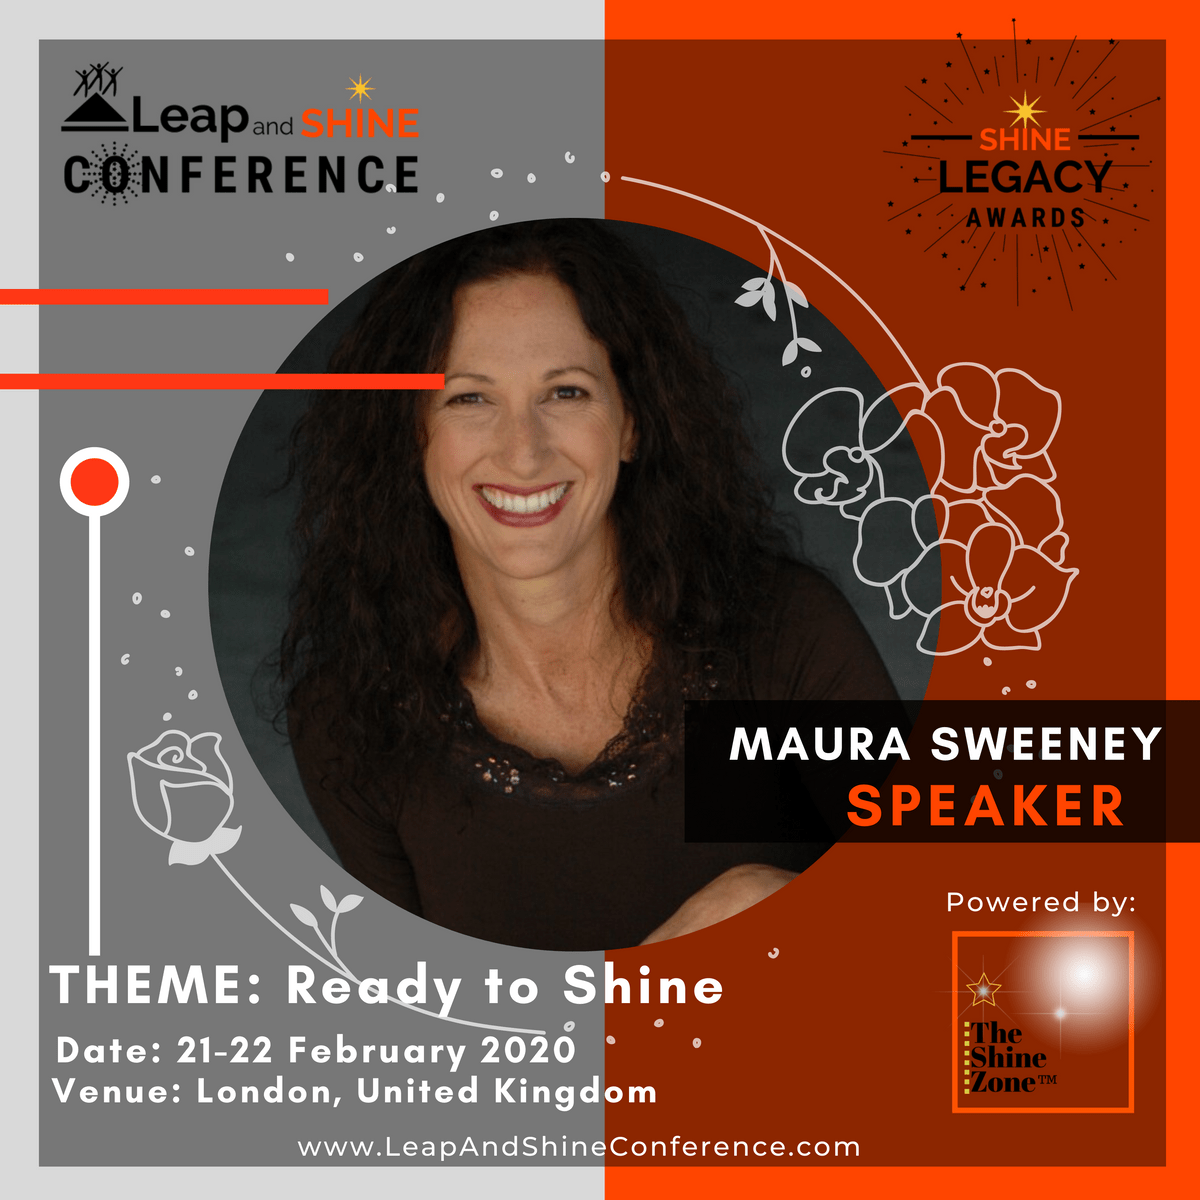 Maura Sweeney is speaking at the Leap and Shine Conference 2020